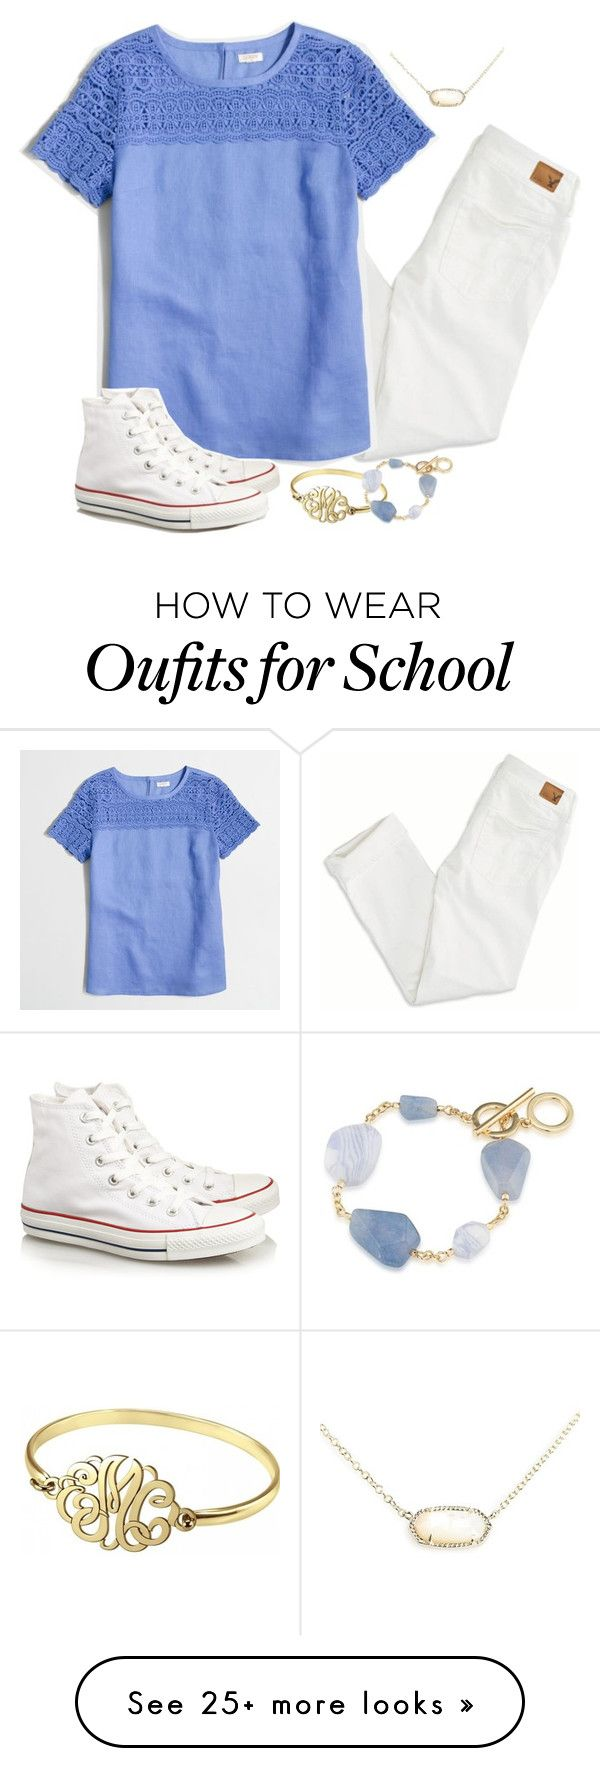 Day Two: Last Day of School by isabelrohrer on Polyvore featuring American Eagle Outfitters, J.Crew, Converse, Kendra Scott, Alison Ivy, Carolee and schoolsoutmadiandashe